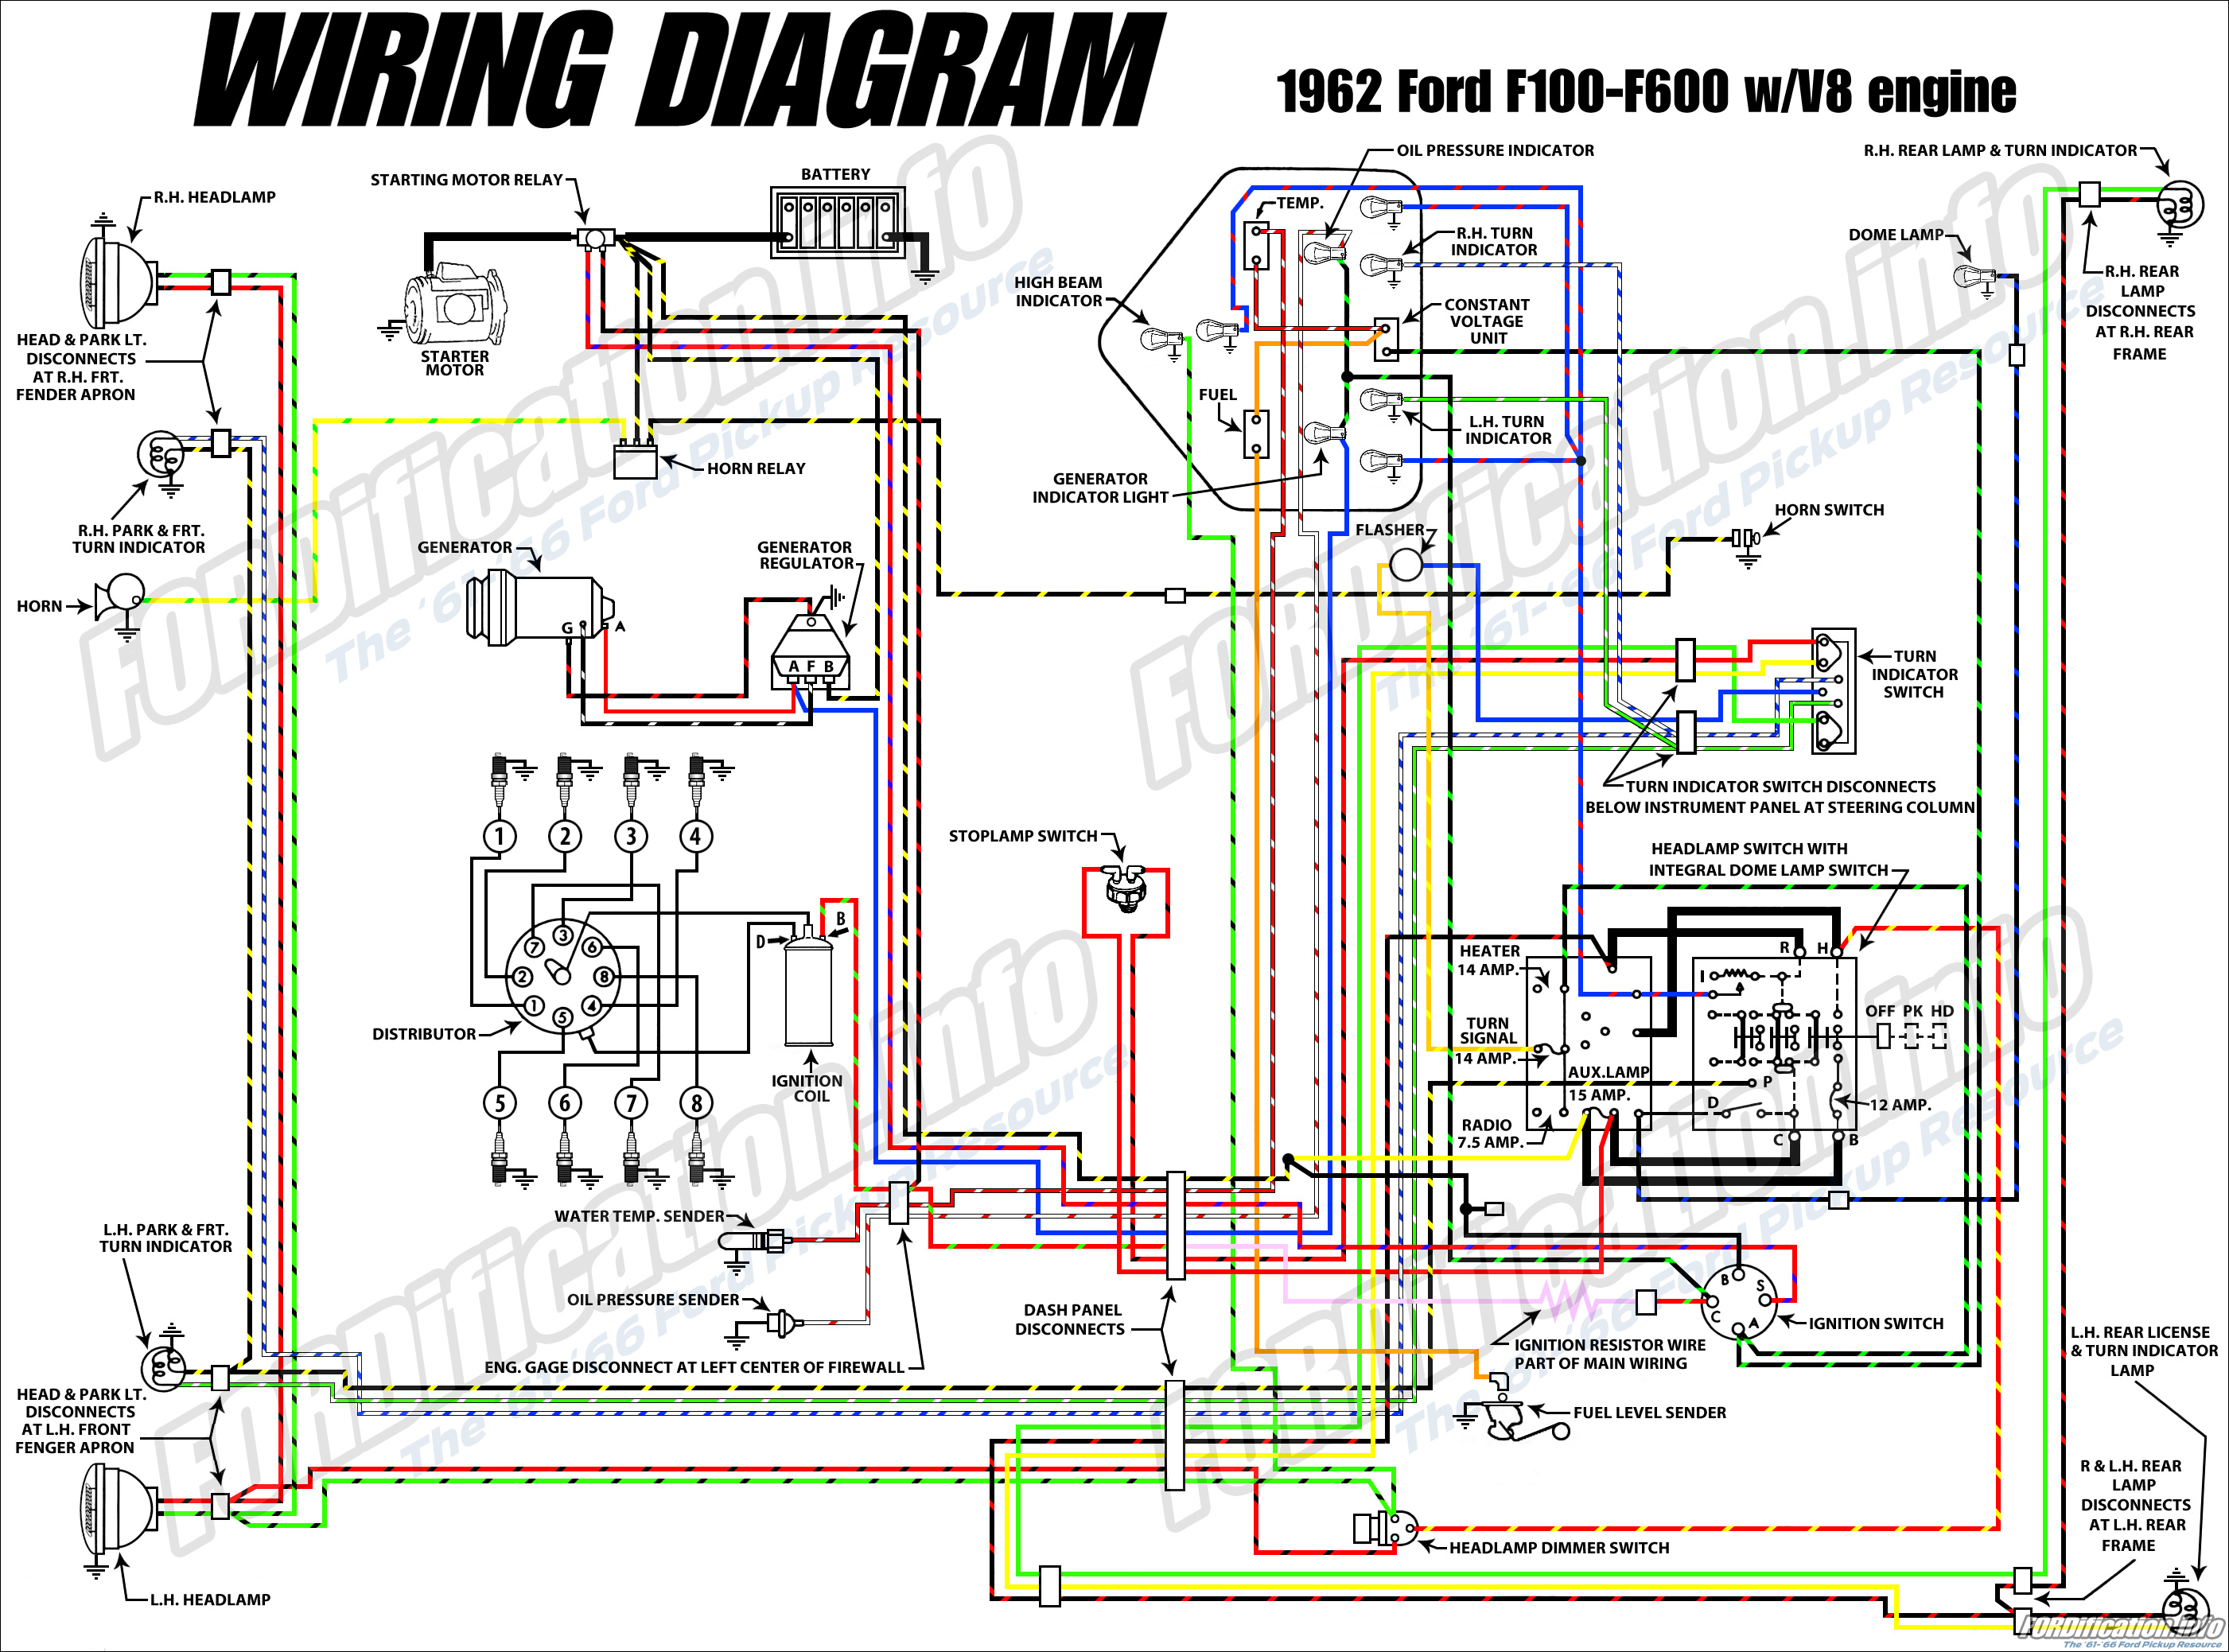 1962 ford truck wiring diagrams fordification info the 61 66 ford resource